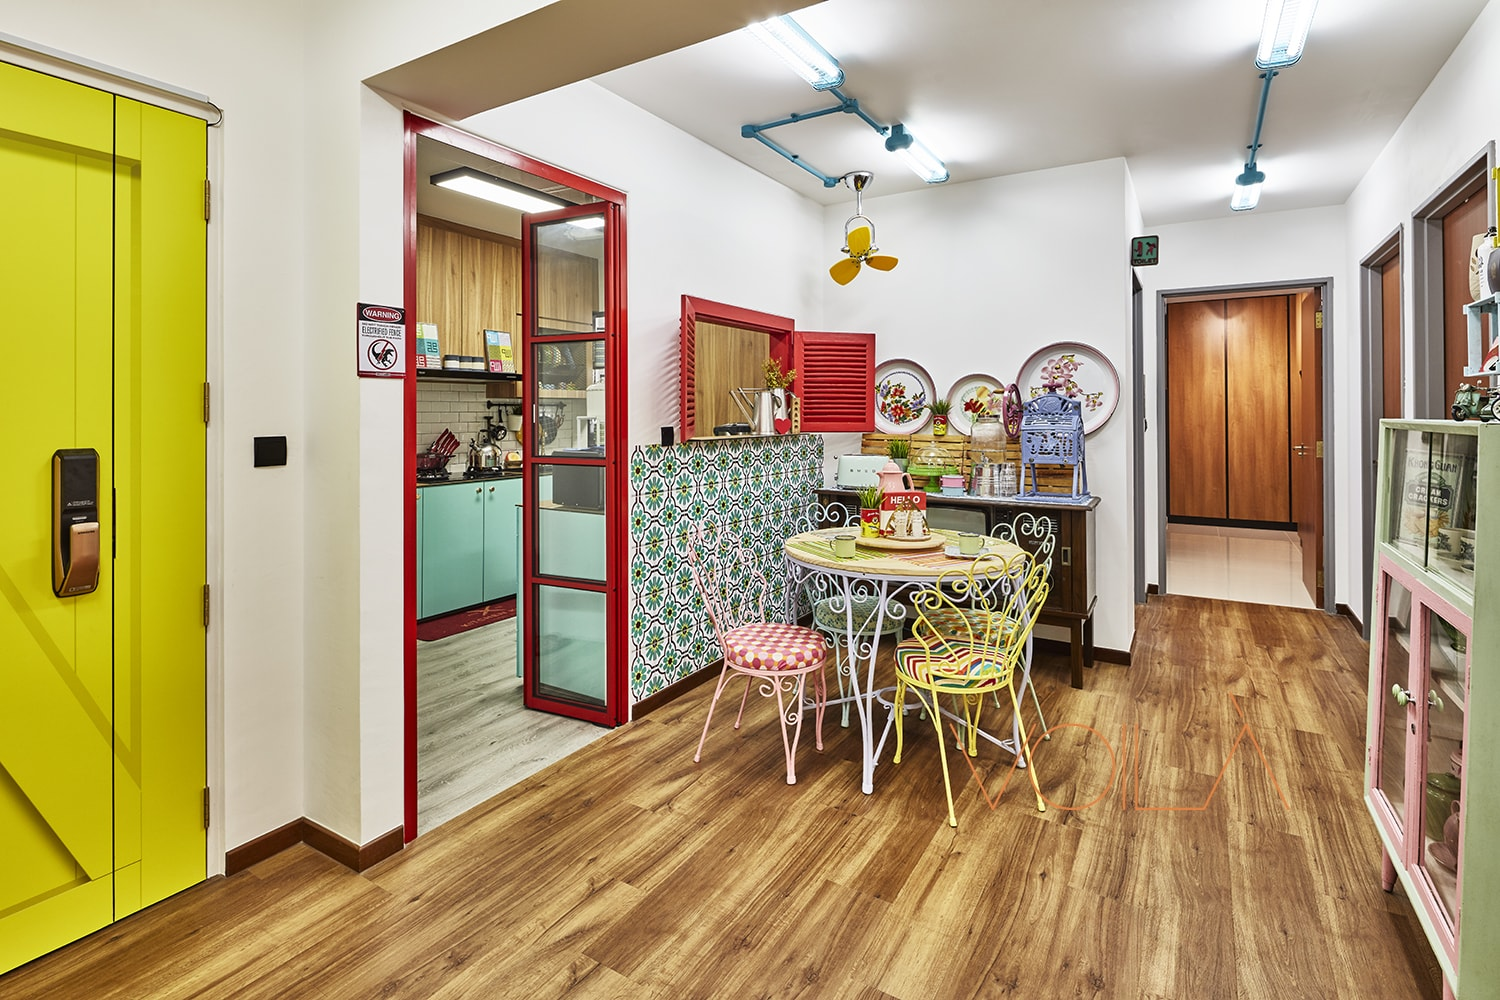 squarerooms Voila maximalist colourful bold home red yellow wood floors door frame table vintage